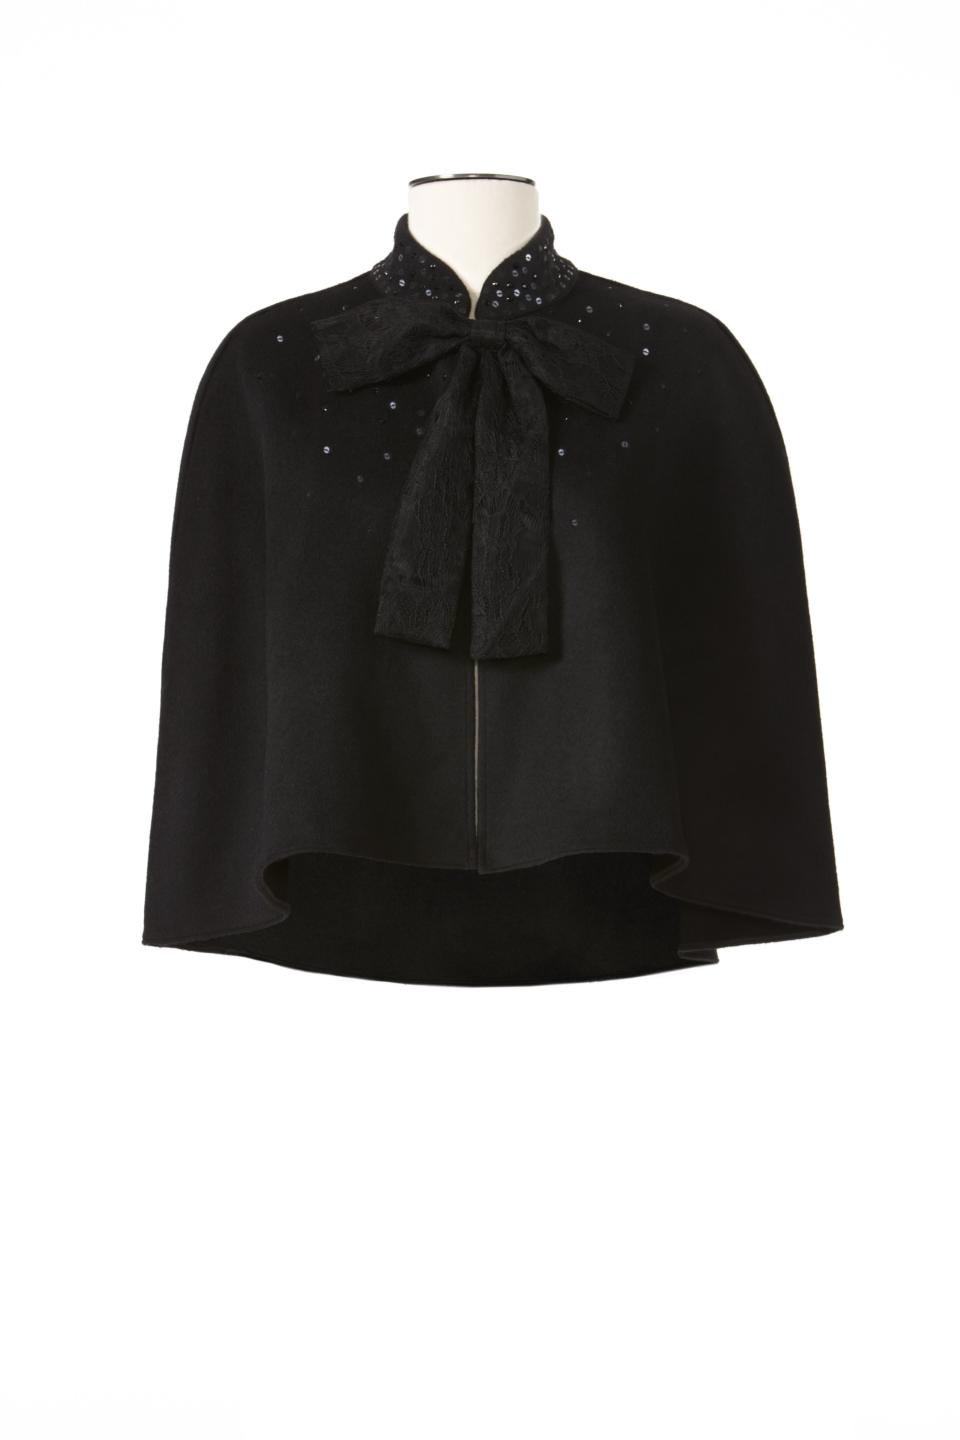 <b>Prabal Gurung for Target + Neiman Marcus Holiday Collection Cape</b><br><br> Price: $79.99<br><br> Size: One size fits most<br><br>